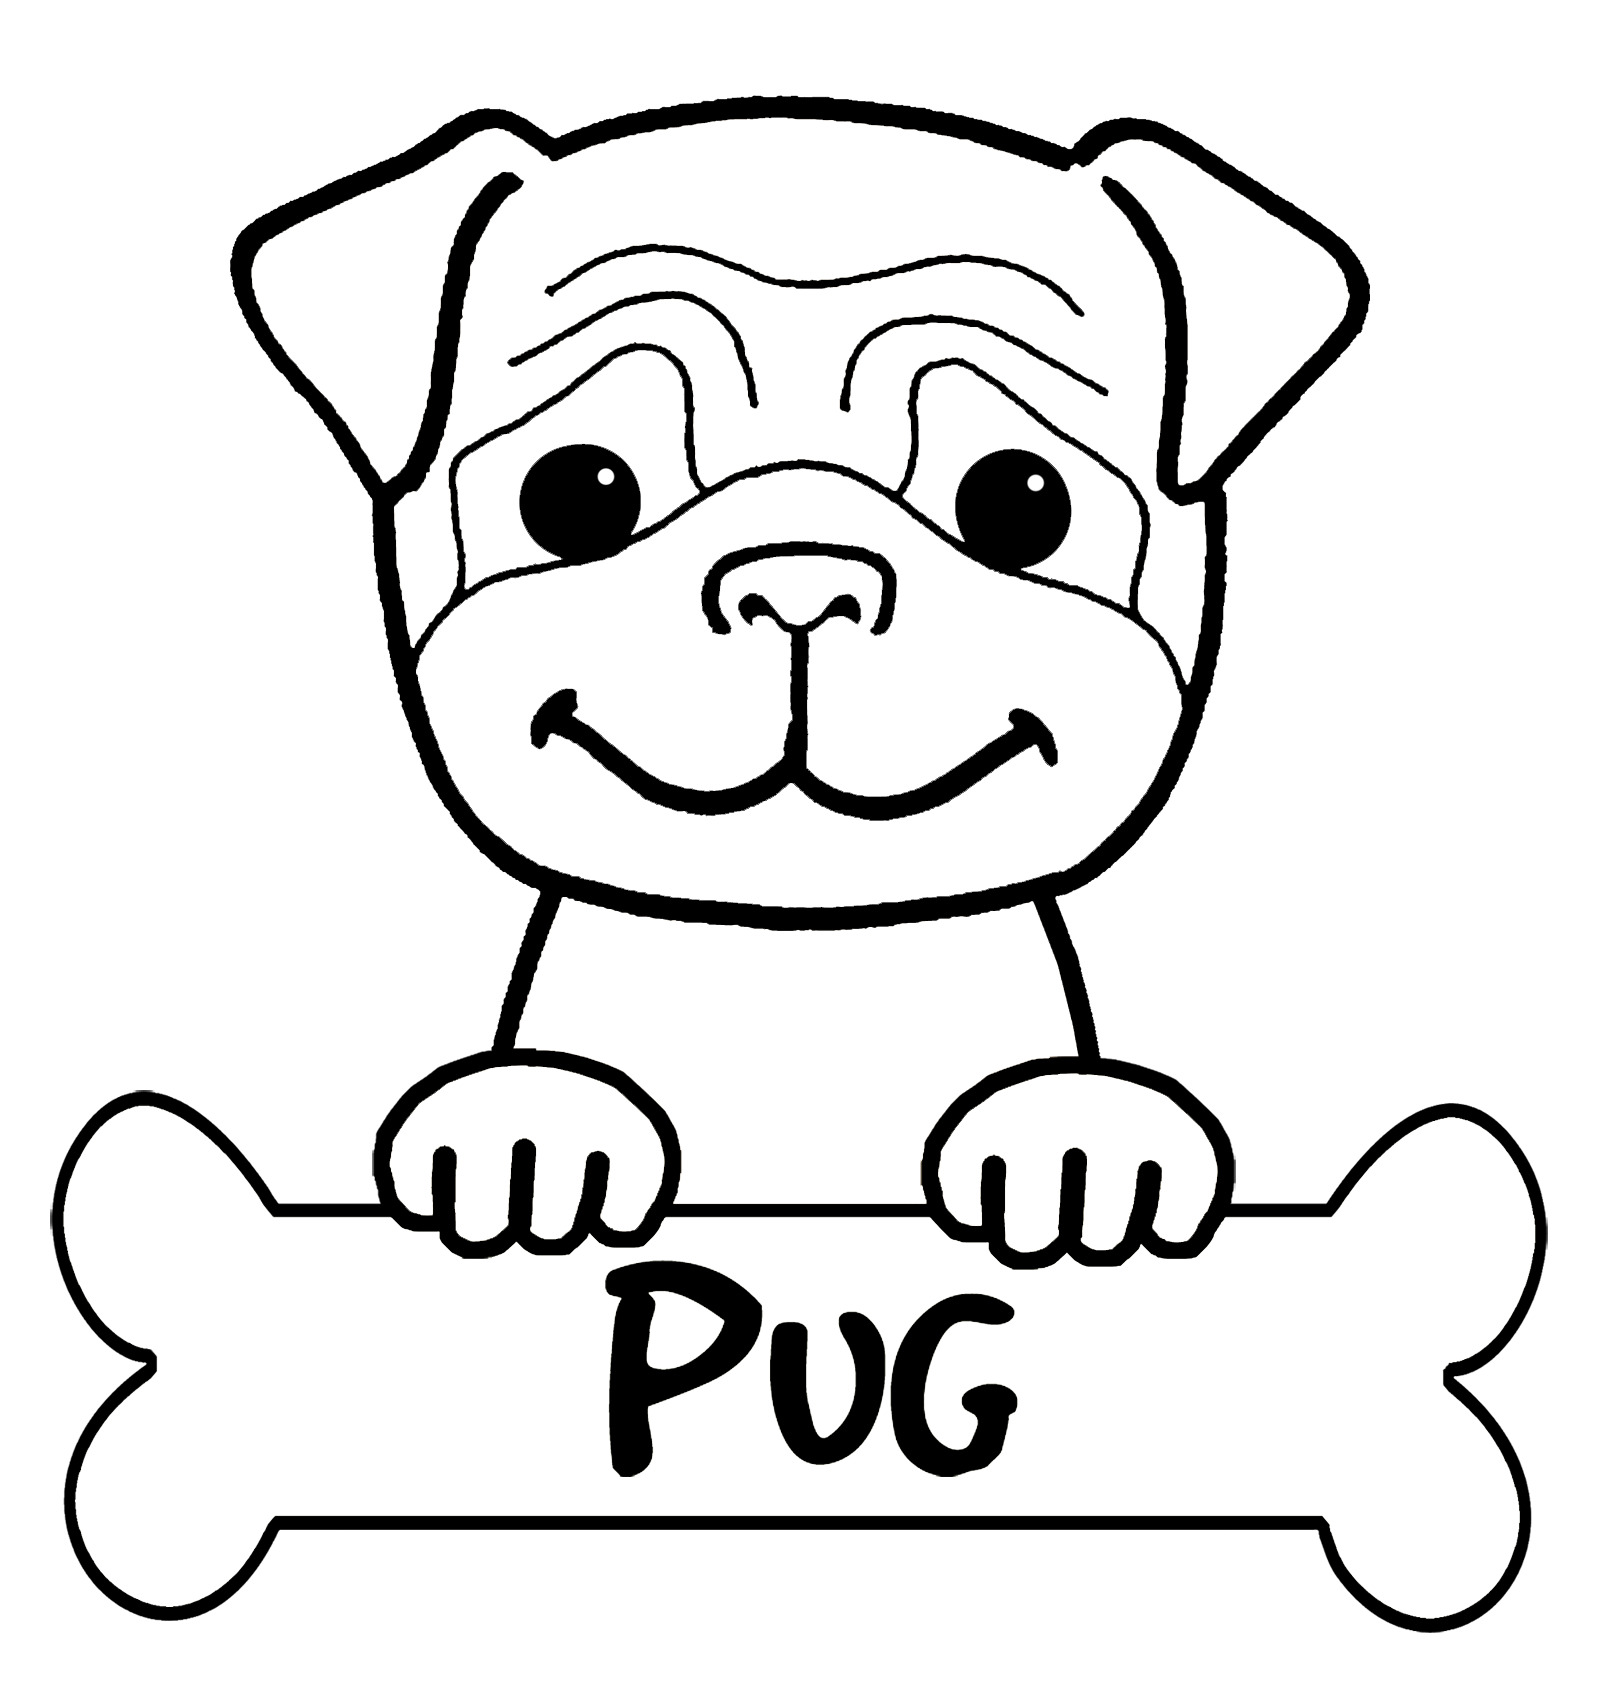 colouring pages of dog pug coloring pages best coloring pages for kids dog of colouring pages